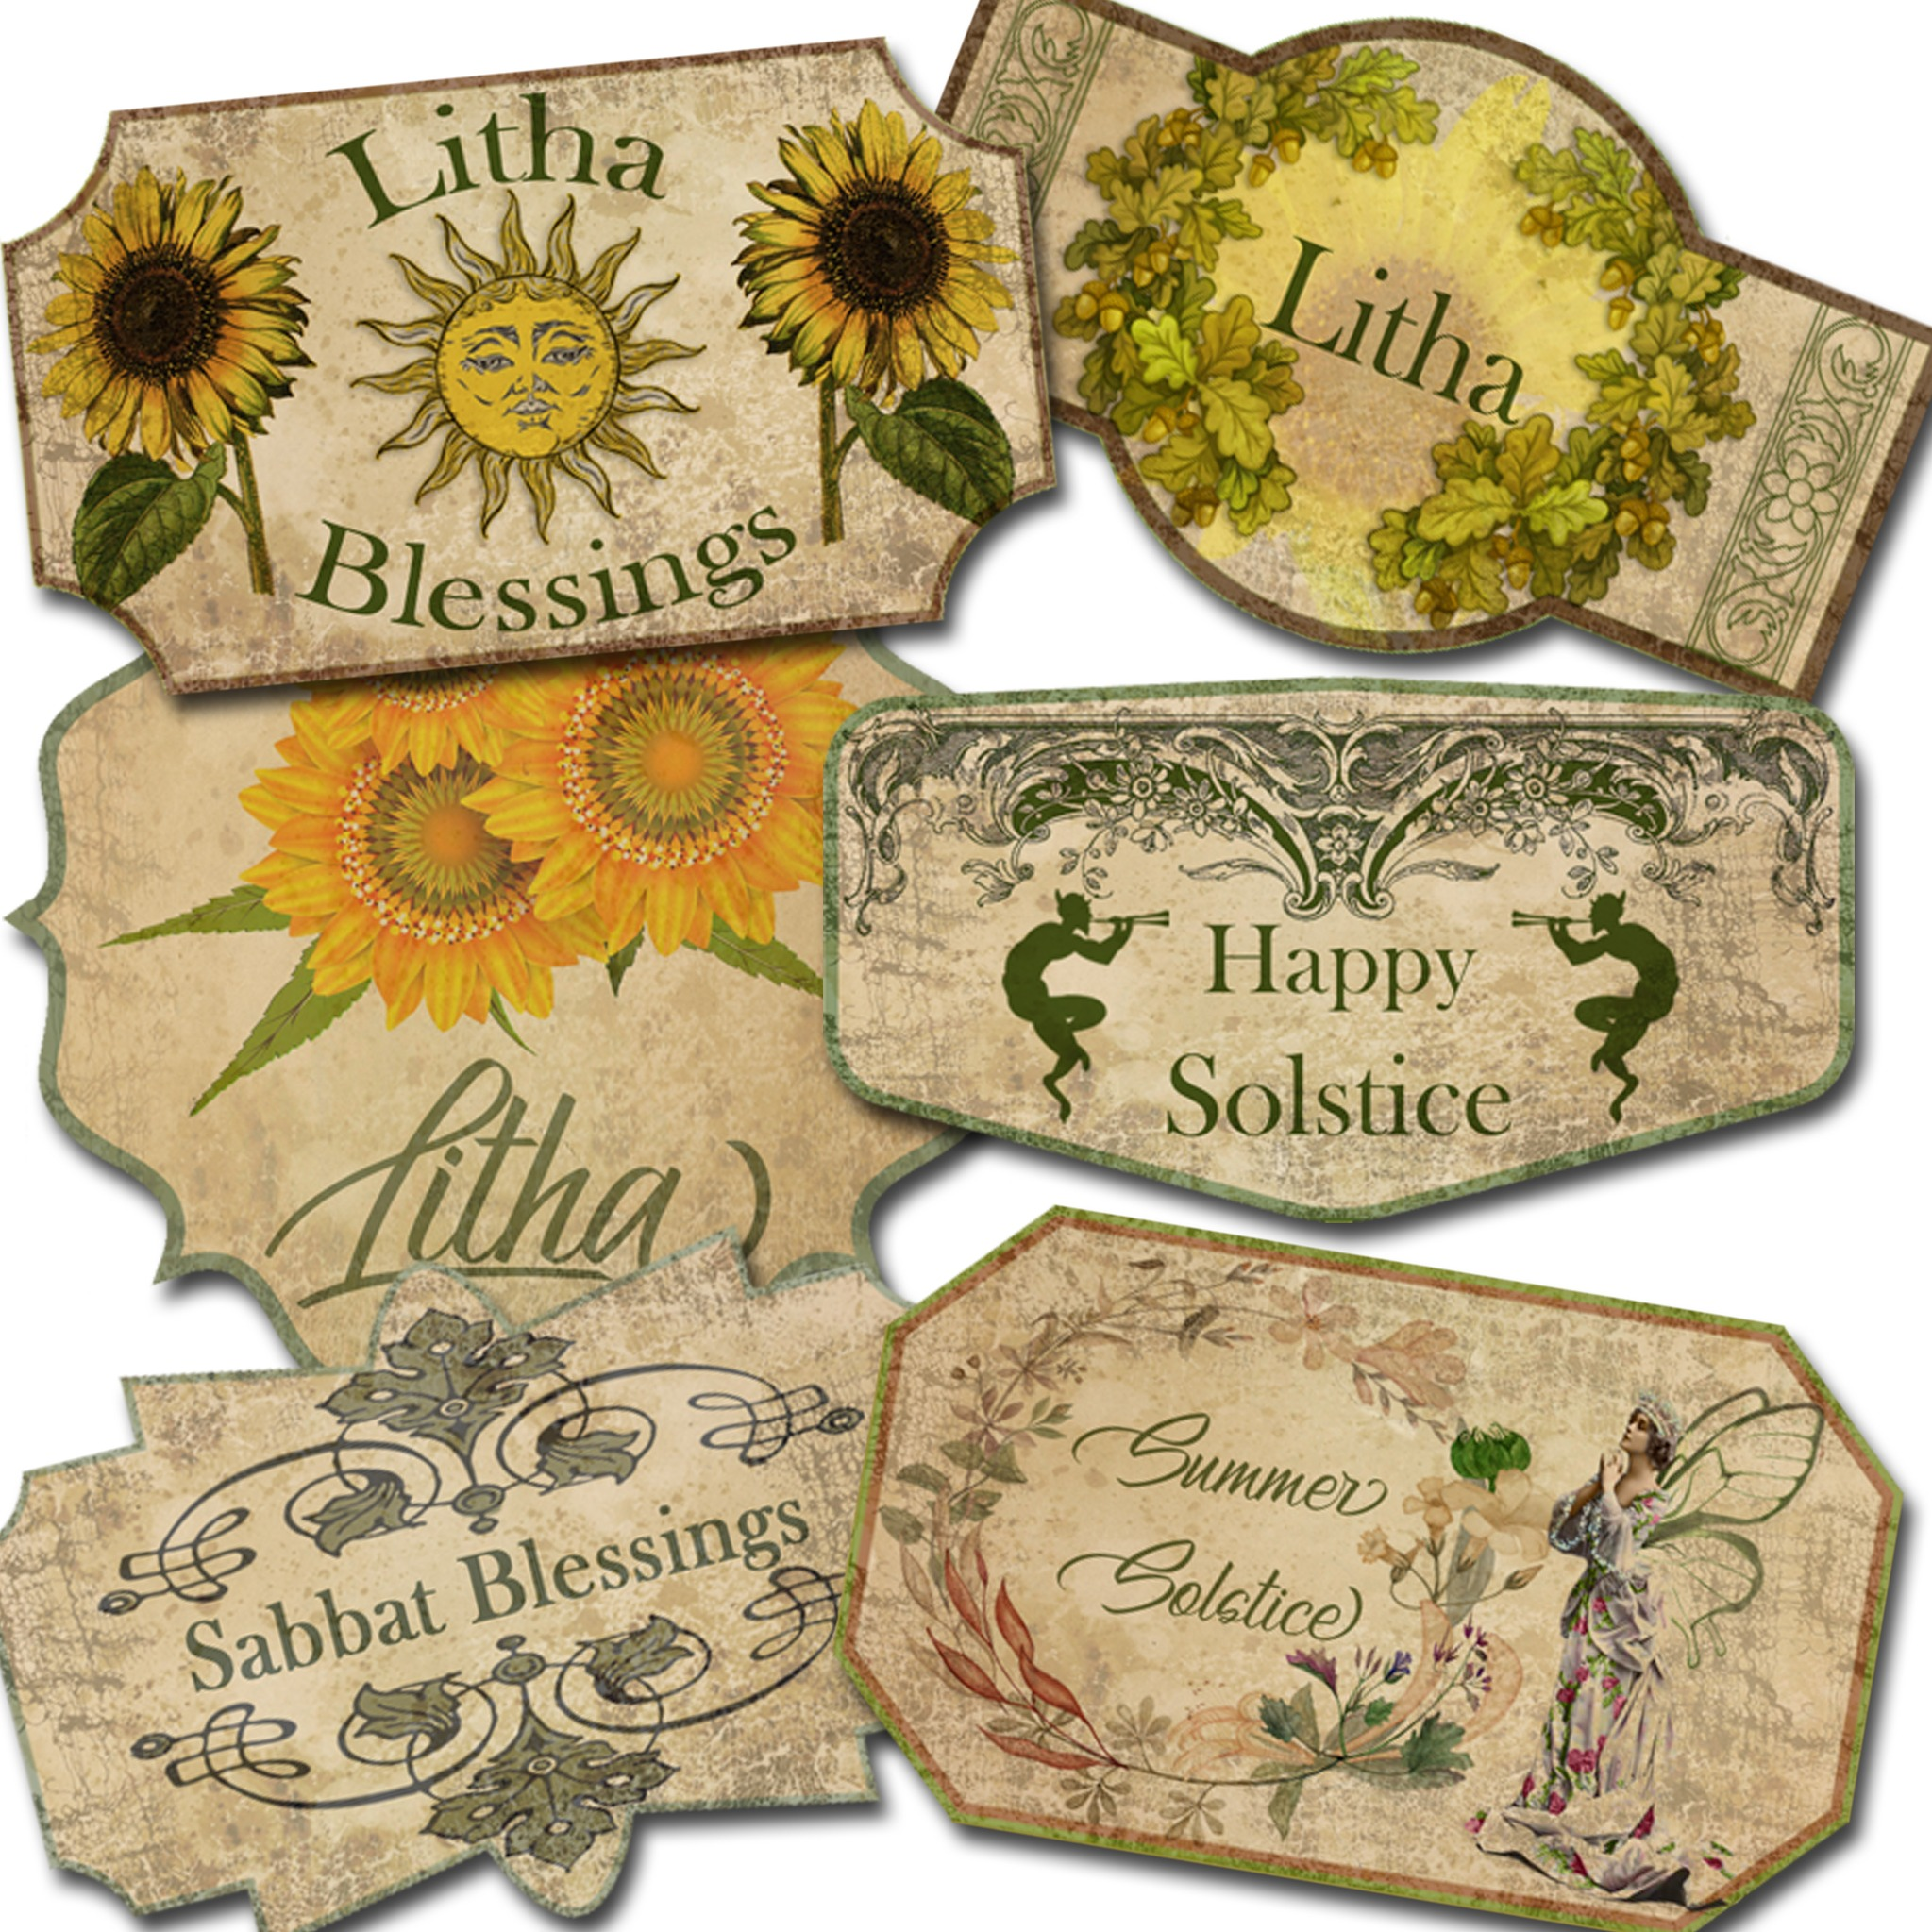 LITHA SABBAT LABELS - 6 Labels - 2 sizes large and small